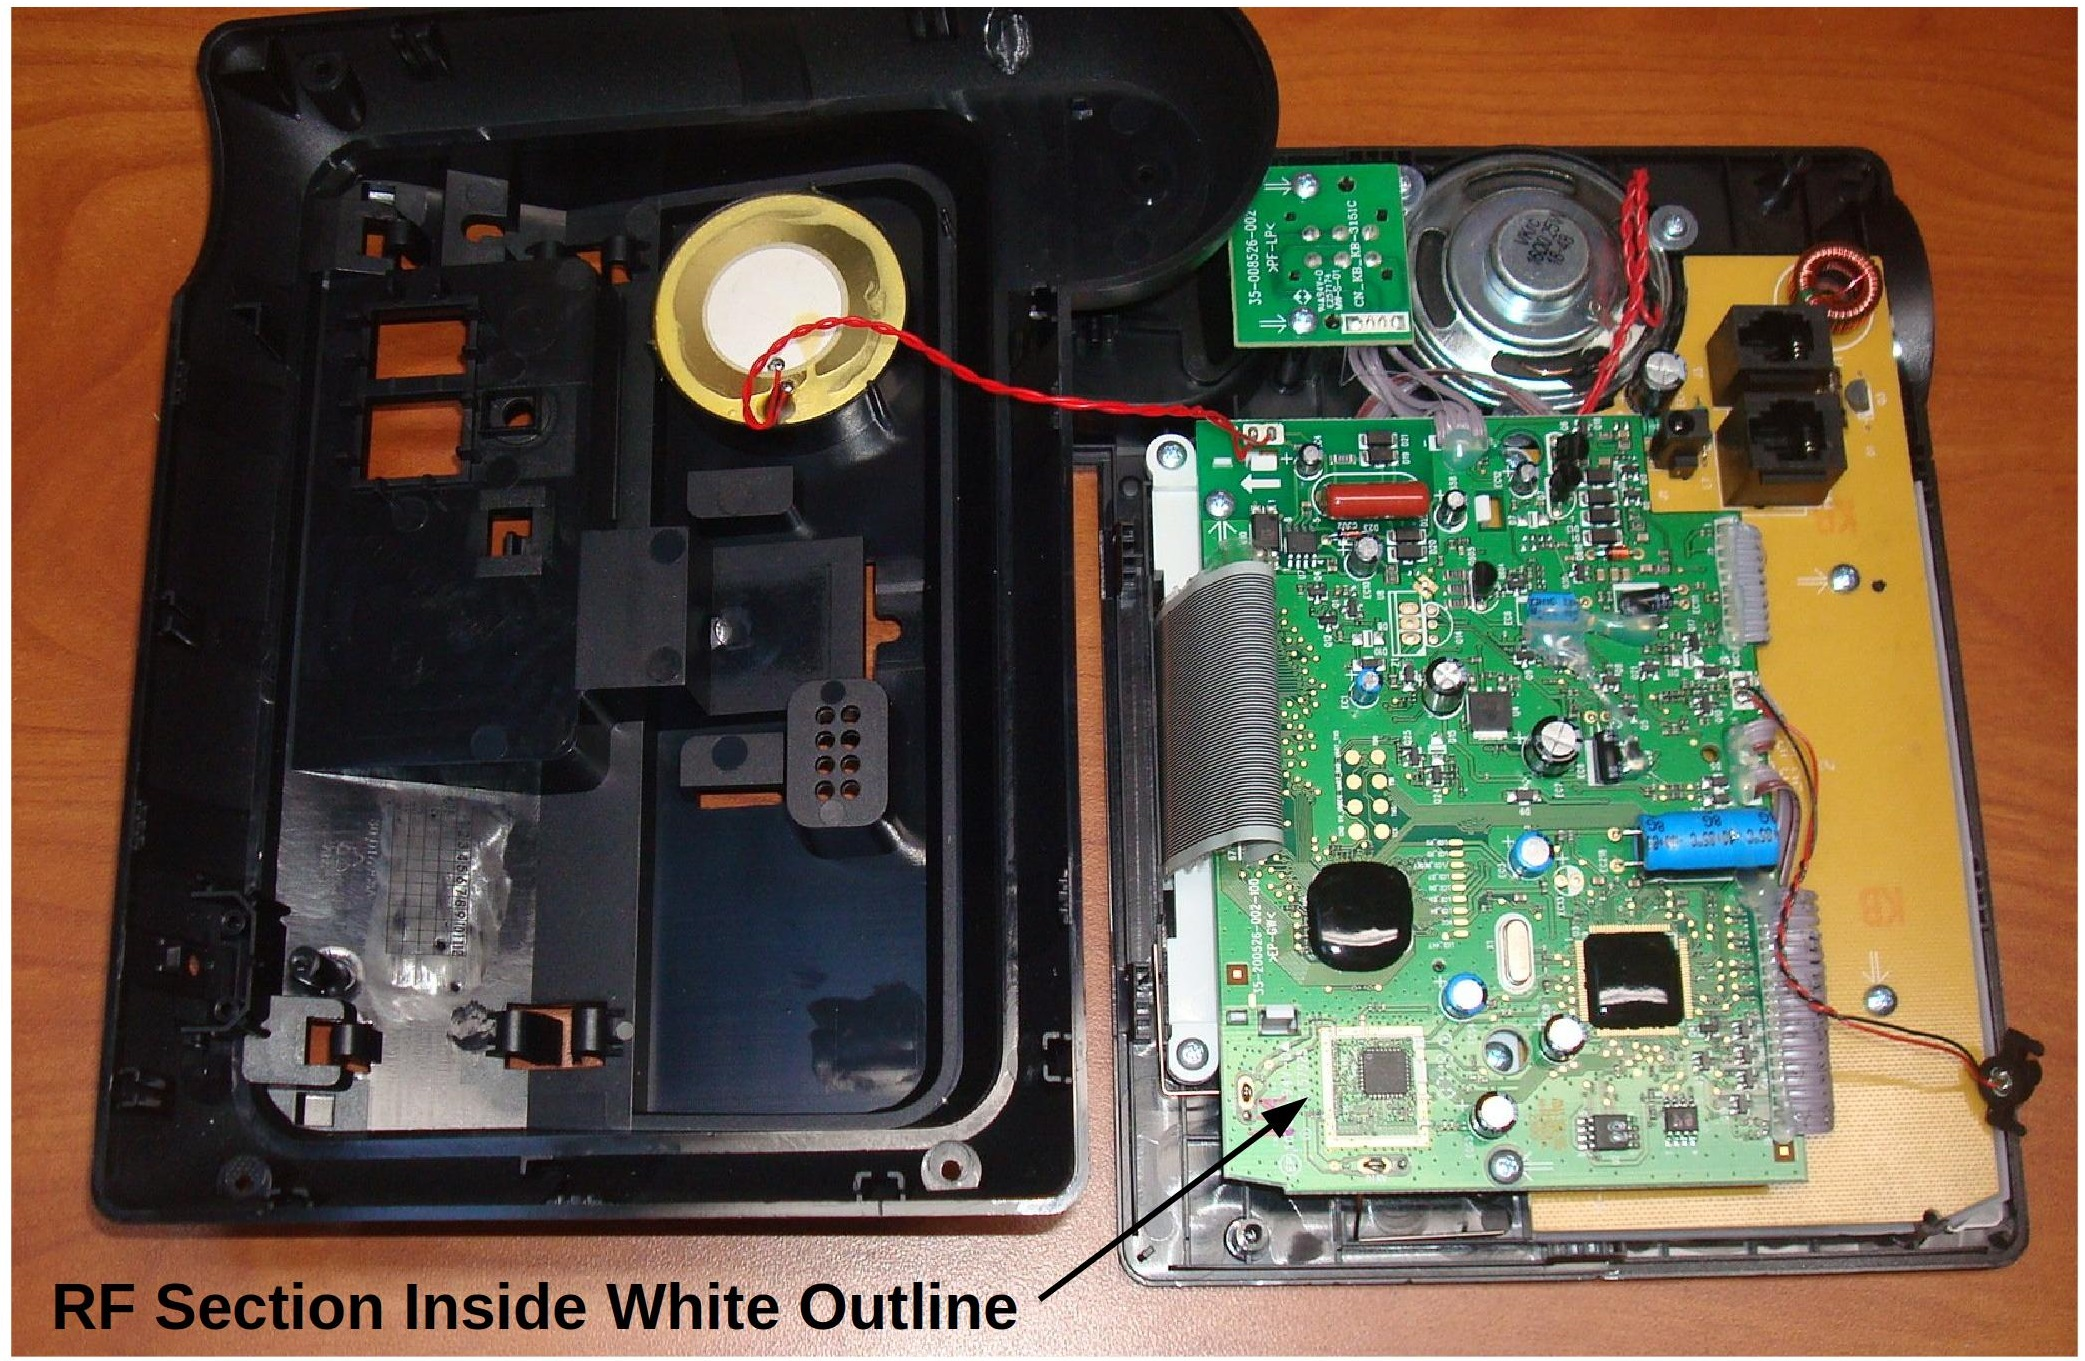 Figure 2: Base station disassembled with printed circuit board exposed